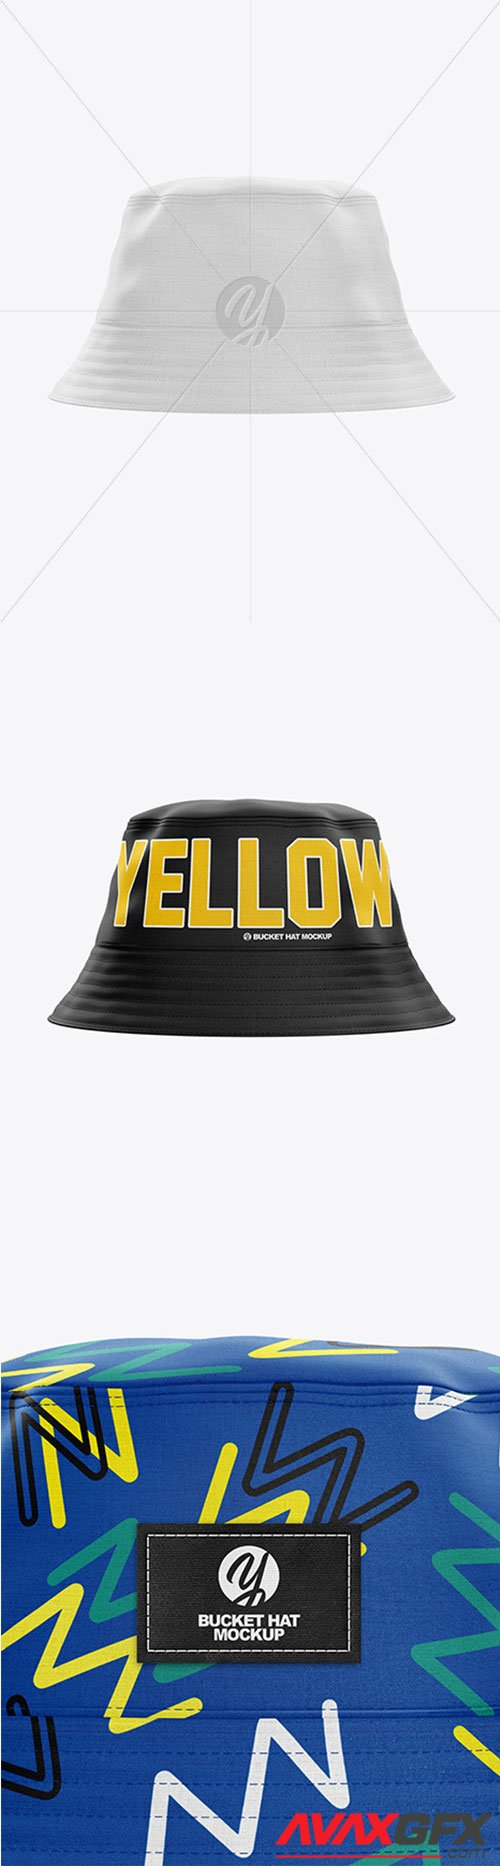 Bucket Hat Mockup - Front View 61476